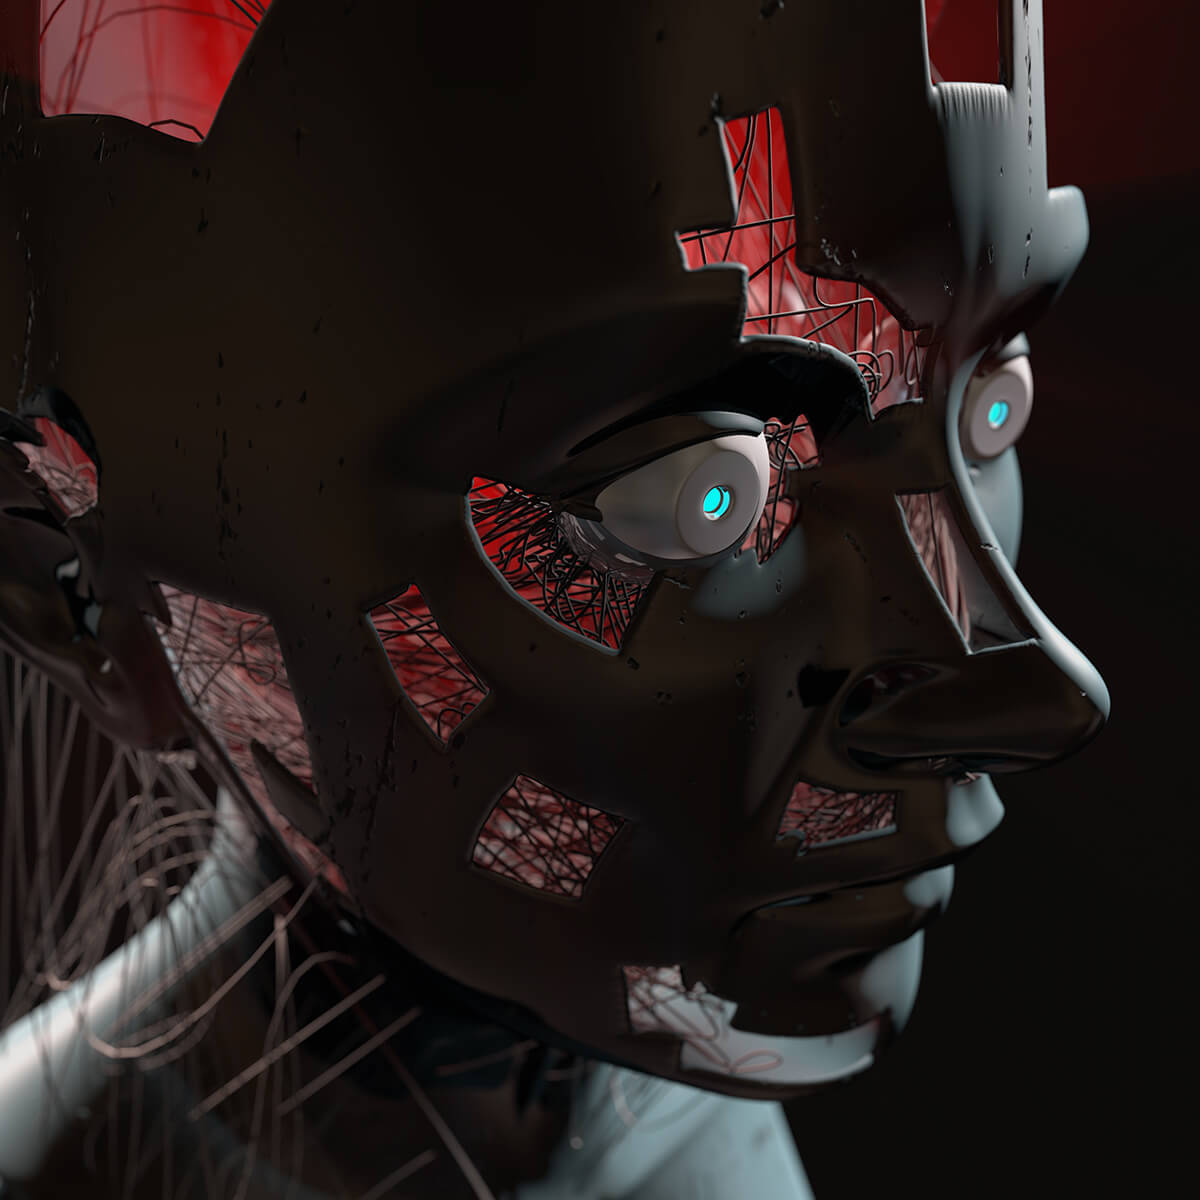 3D render of a humanoid droid with holes in its head showing wires